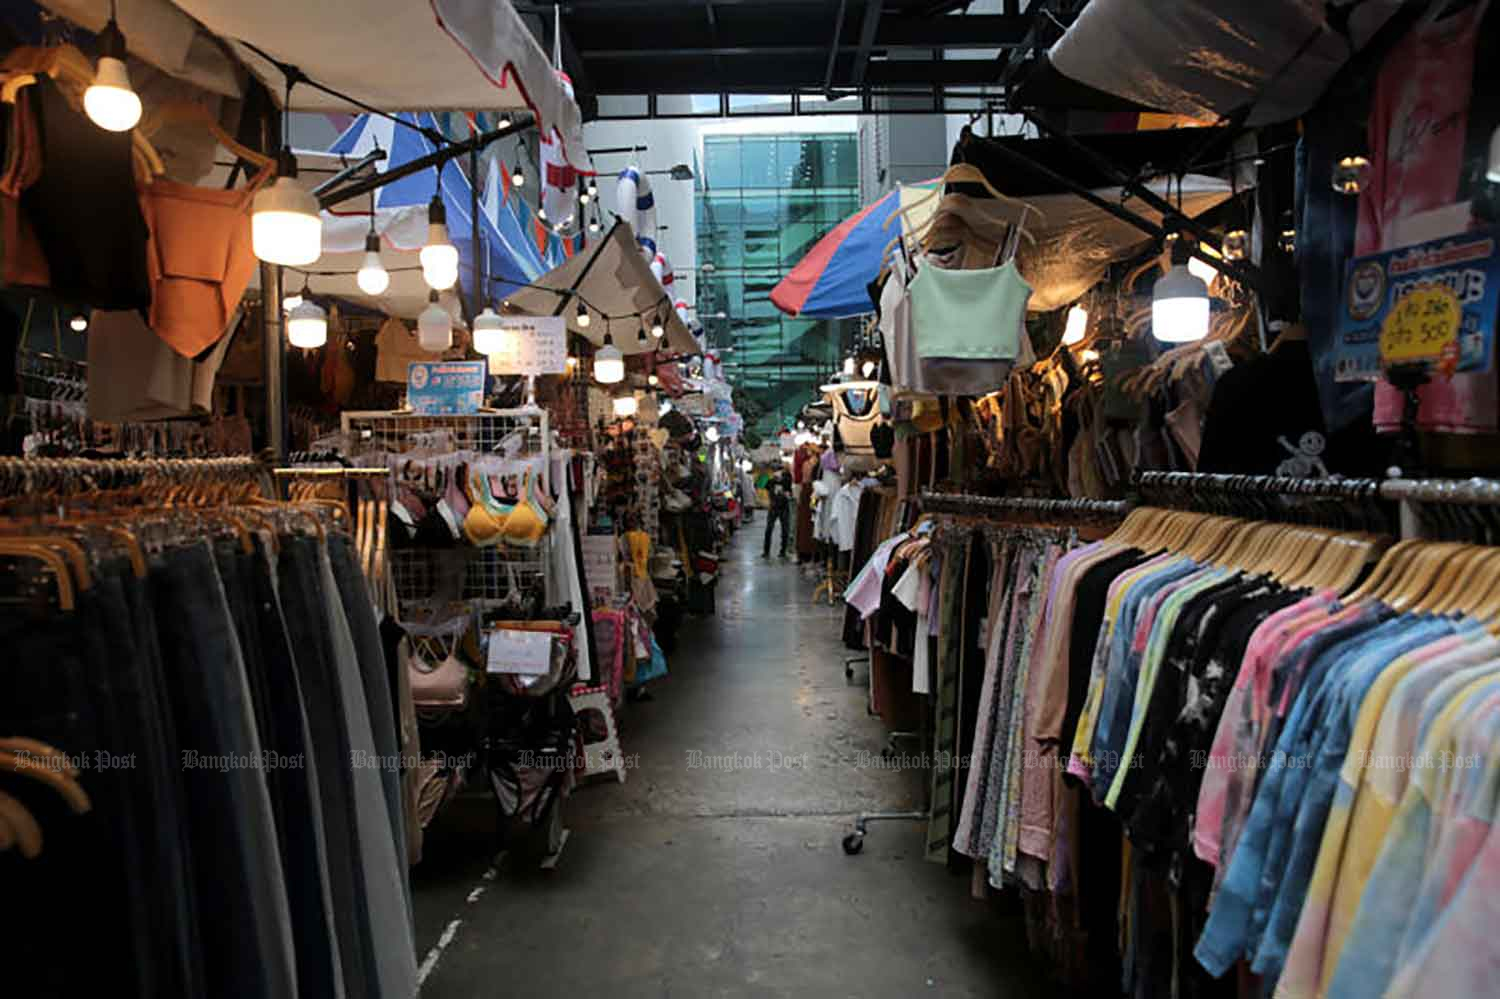 Shopping area in Bangkok's Pathumwan district is almost deserted last month as many shoppers choose to stay away from public places amid the third wave of Covid-19, which has dealt yet another blow to retailers still struggling as a result of previous outbreaks. (Photo by Chanat Katanyu)